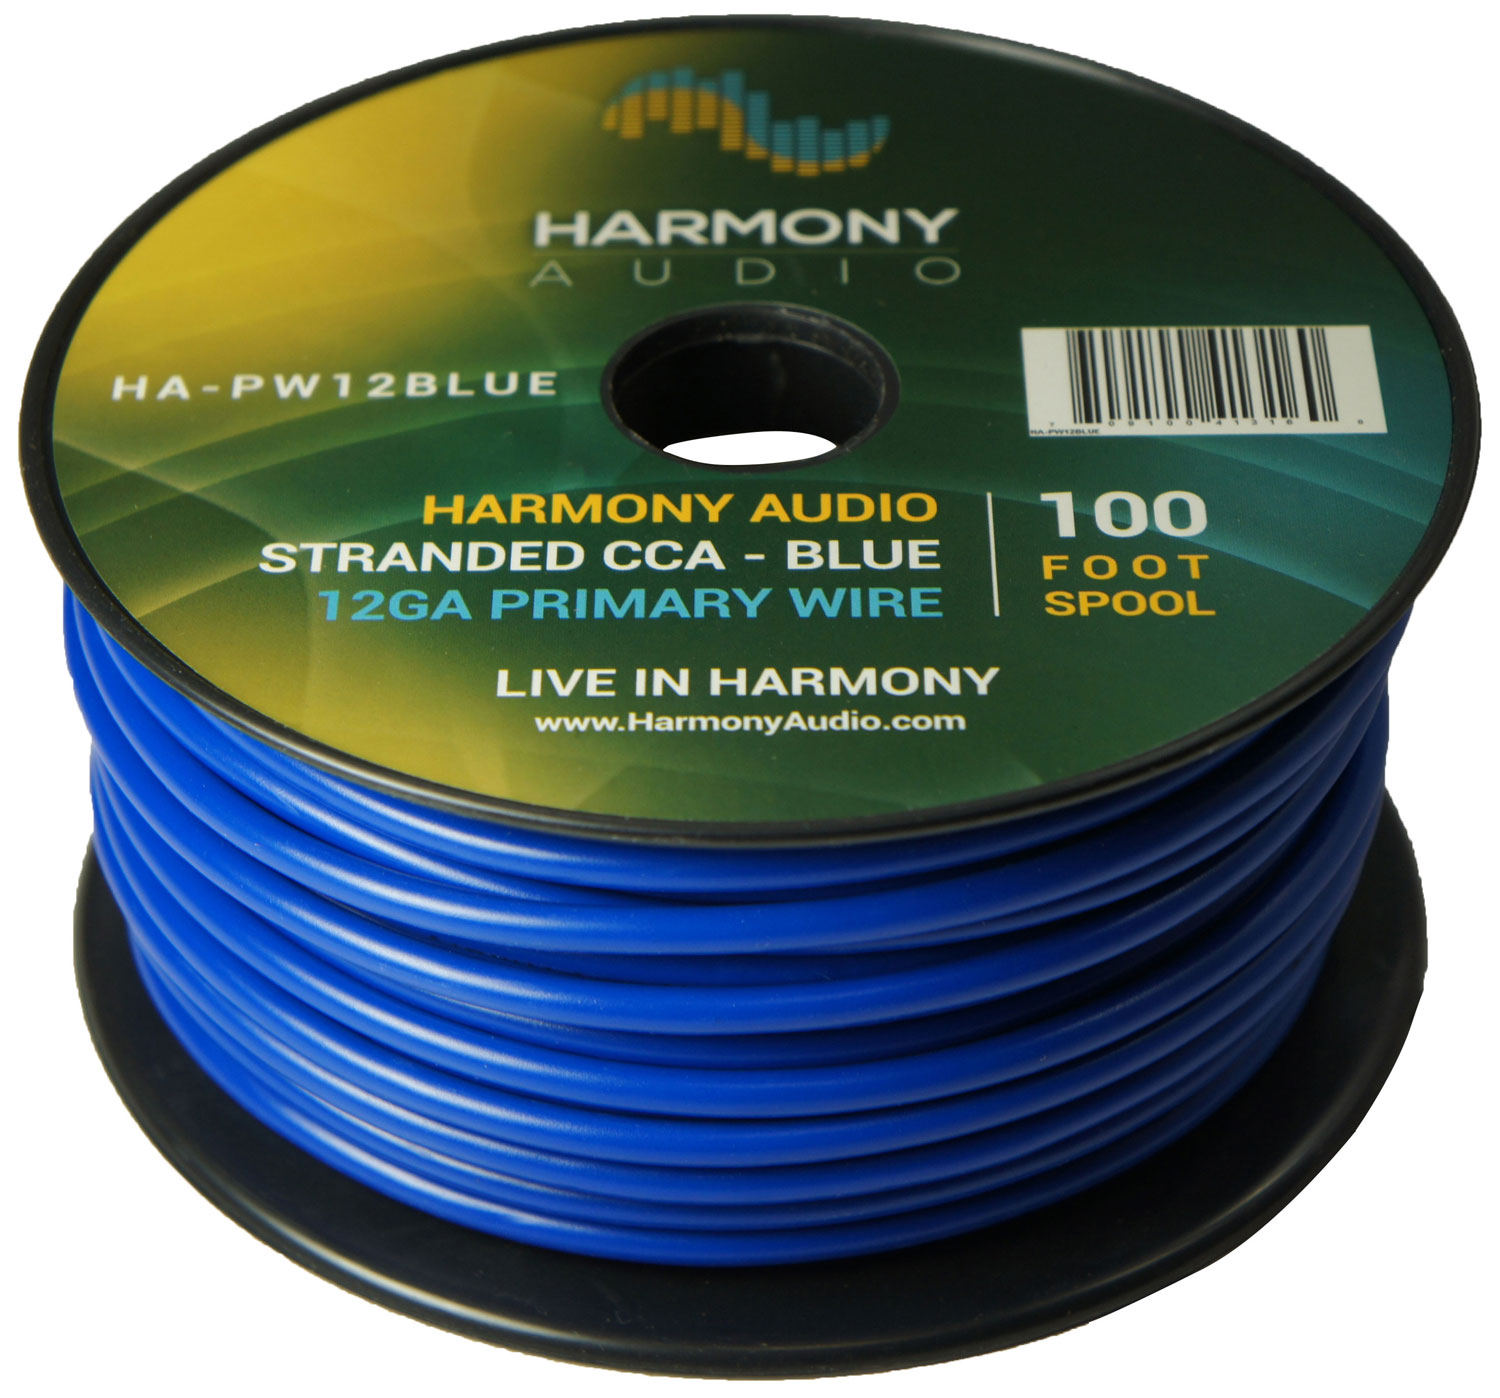 Harmony Audio HA-PW12BLUE Primary Single Conductor 12 Gauge Blue Power or Ground Wire Roll 100 Feet Cable for Car Audio / Trailer / Model Train / Remote